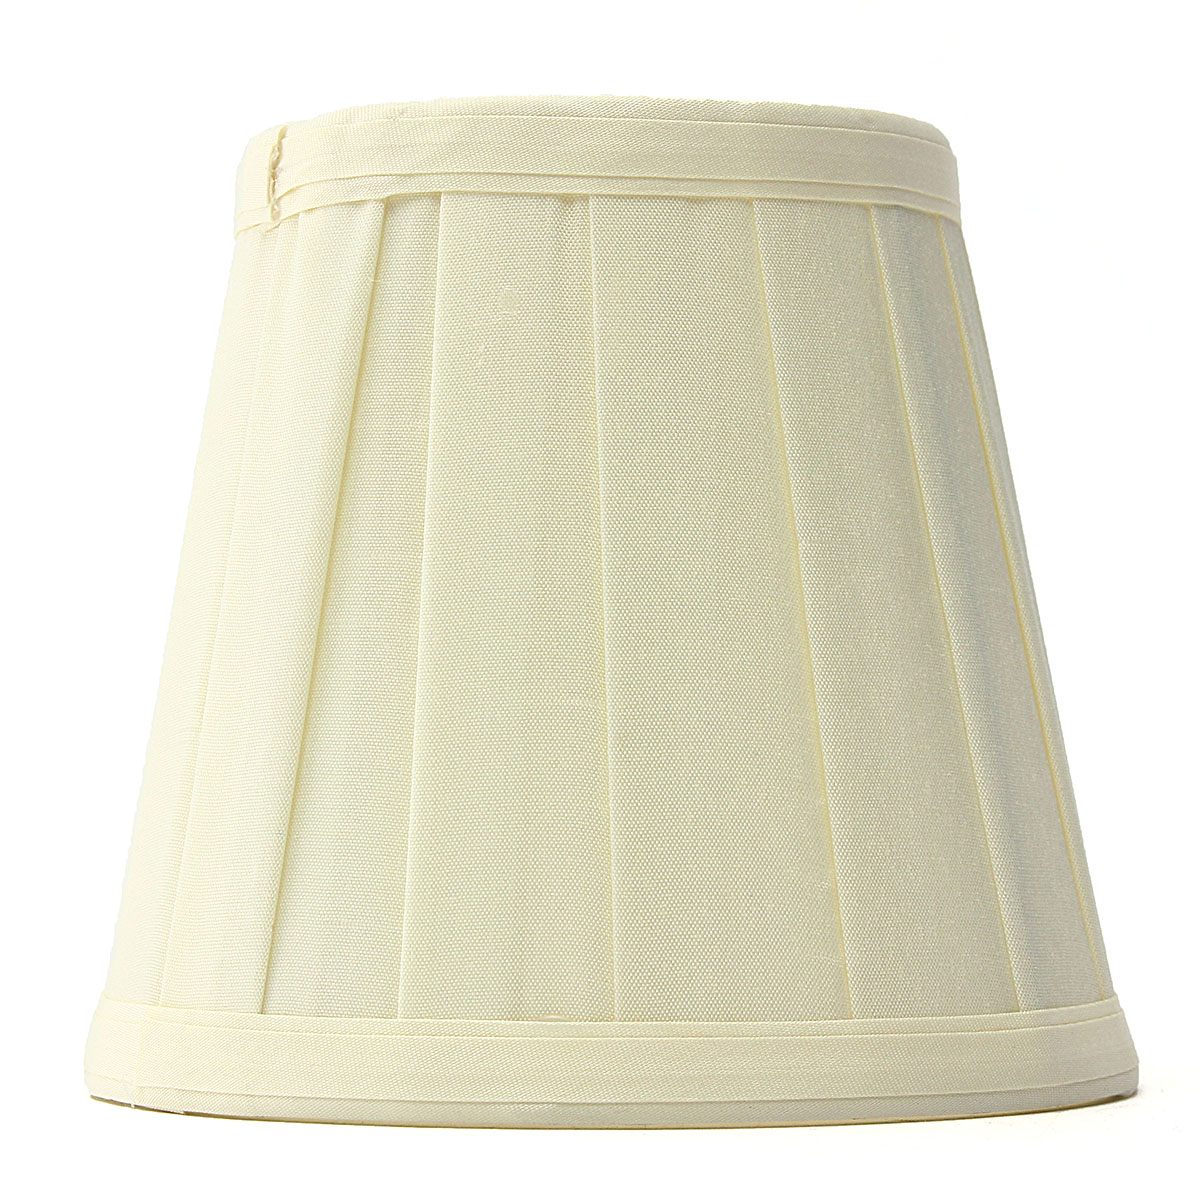 Fabric chandelier lampshade holder clip on sconce bedroom beside 31bd8a26 9511 4b7d ae08 43c7c29163c5g arubaitofo Gallery